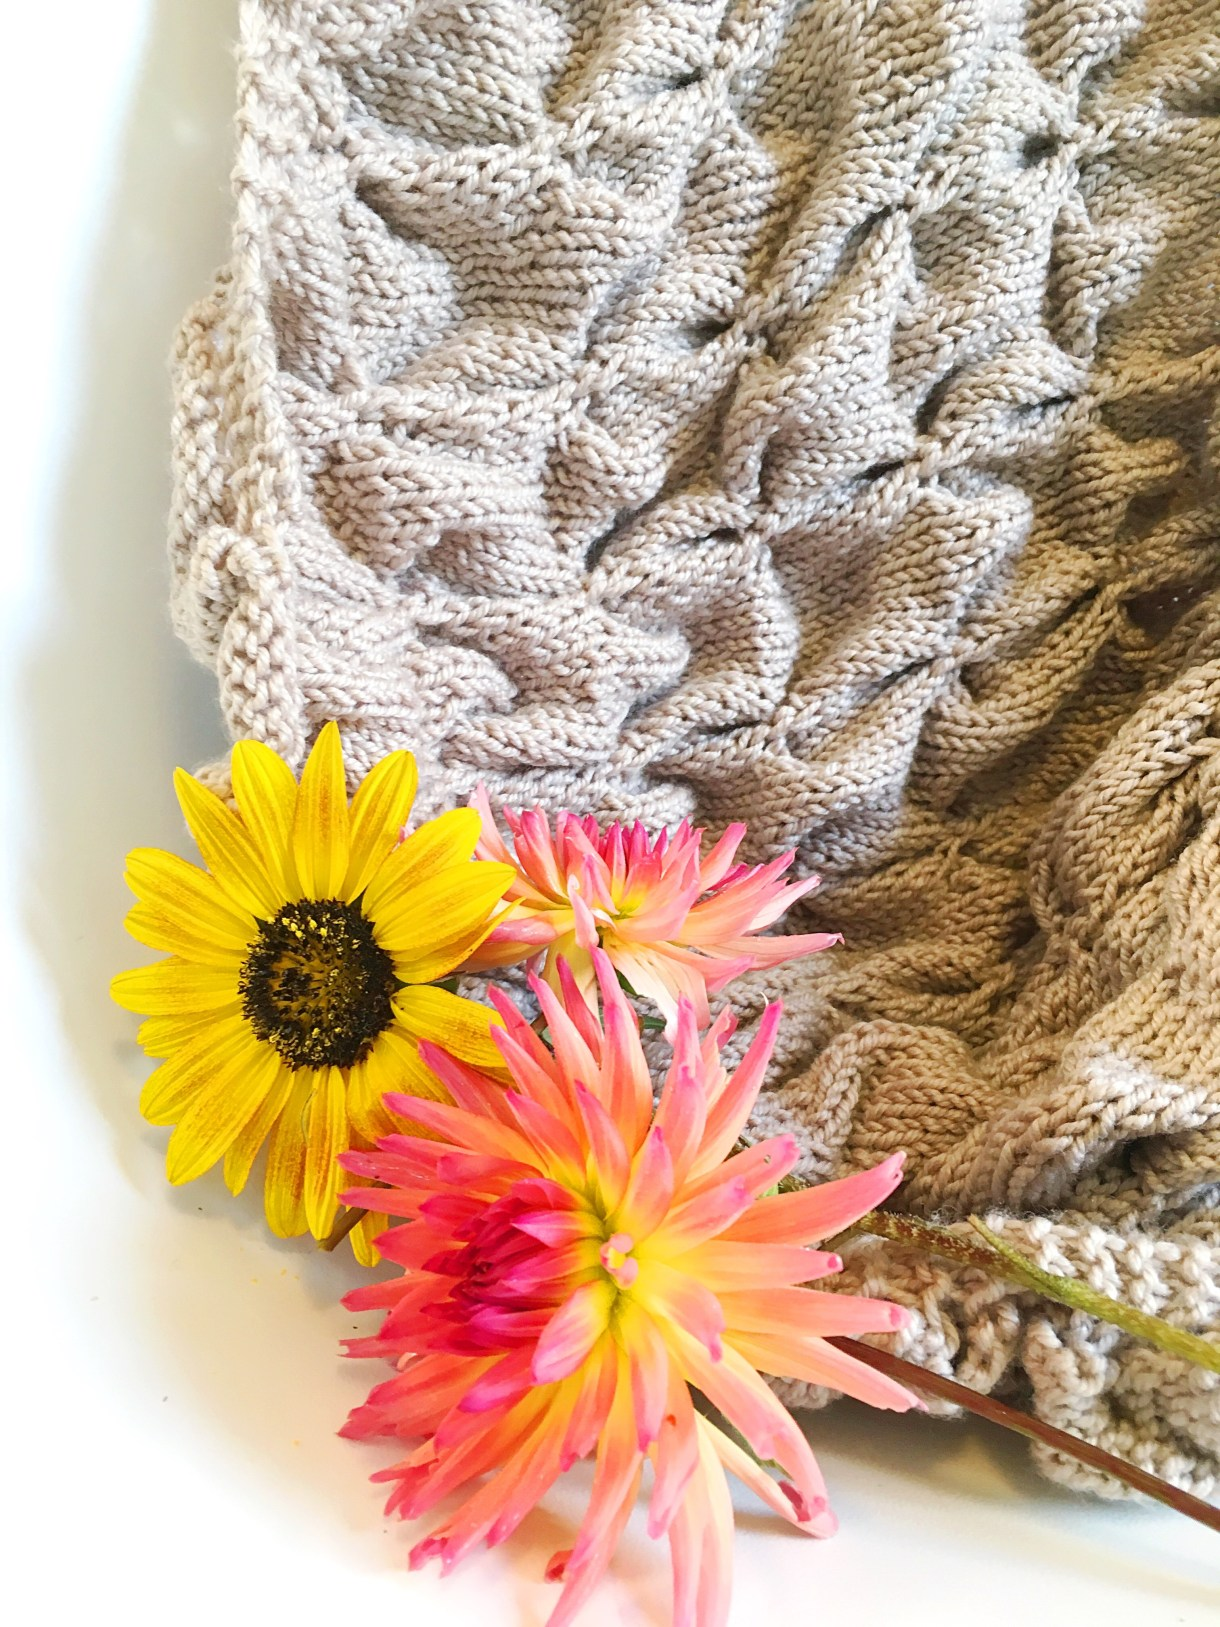 Dimensional Tuct Knitting reviewed by Andrea @ This Knitted Life